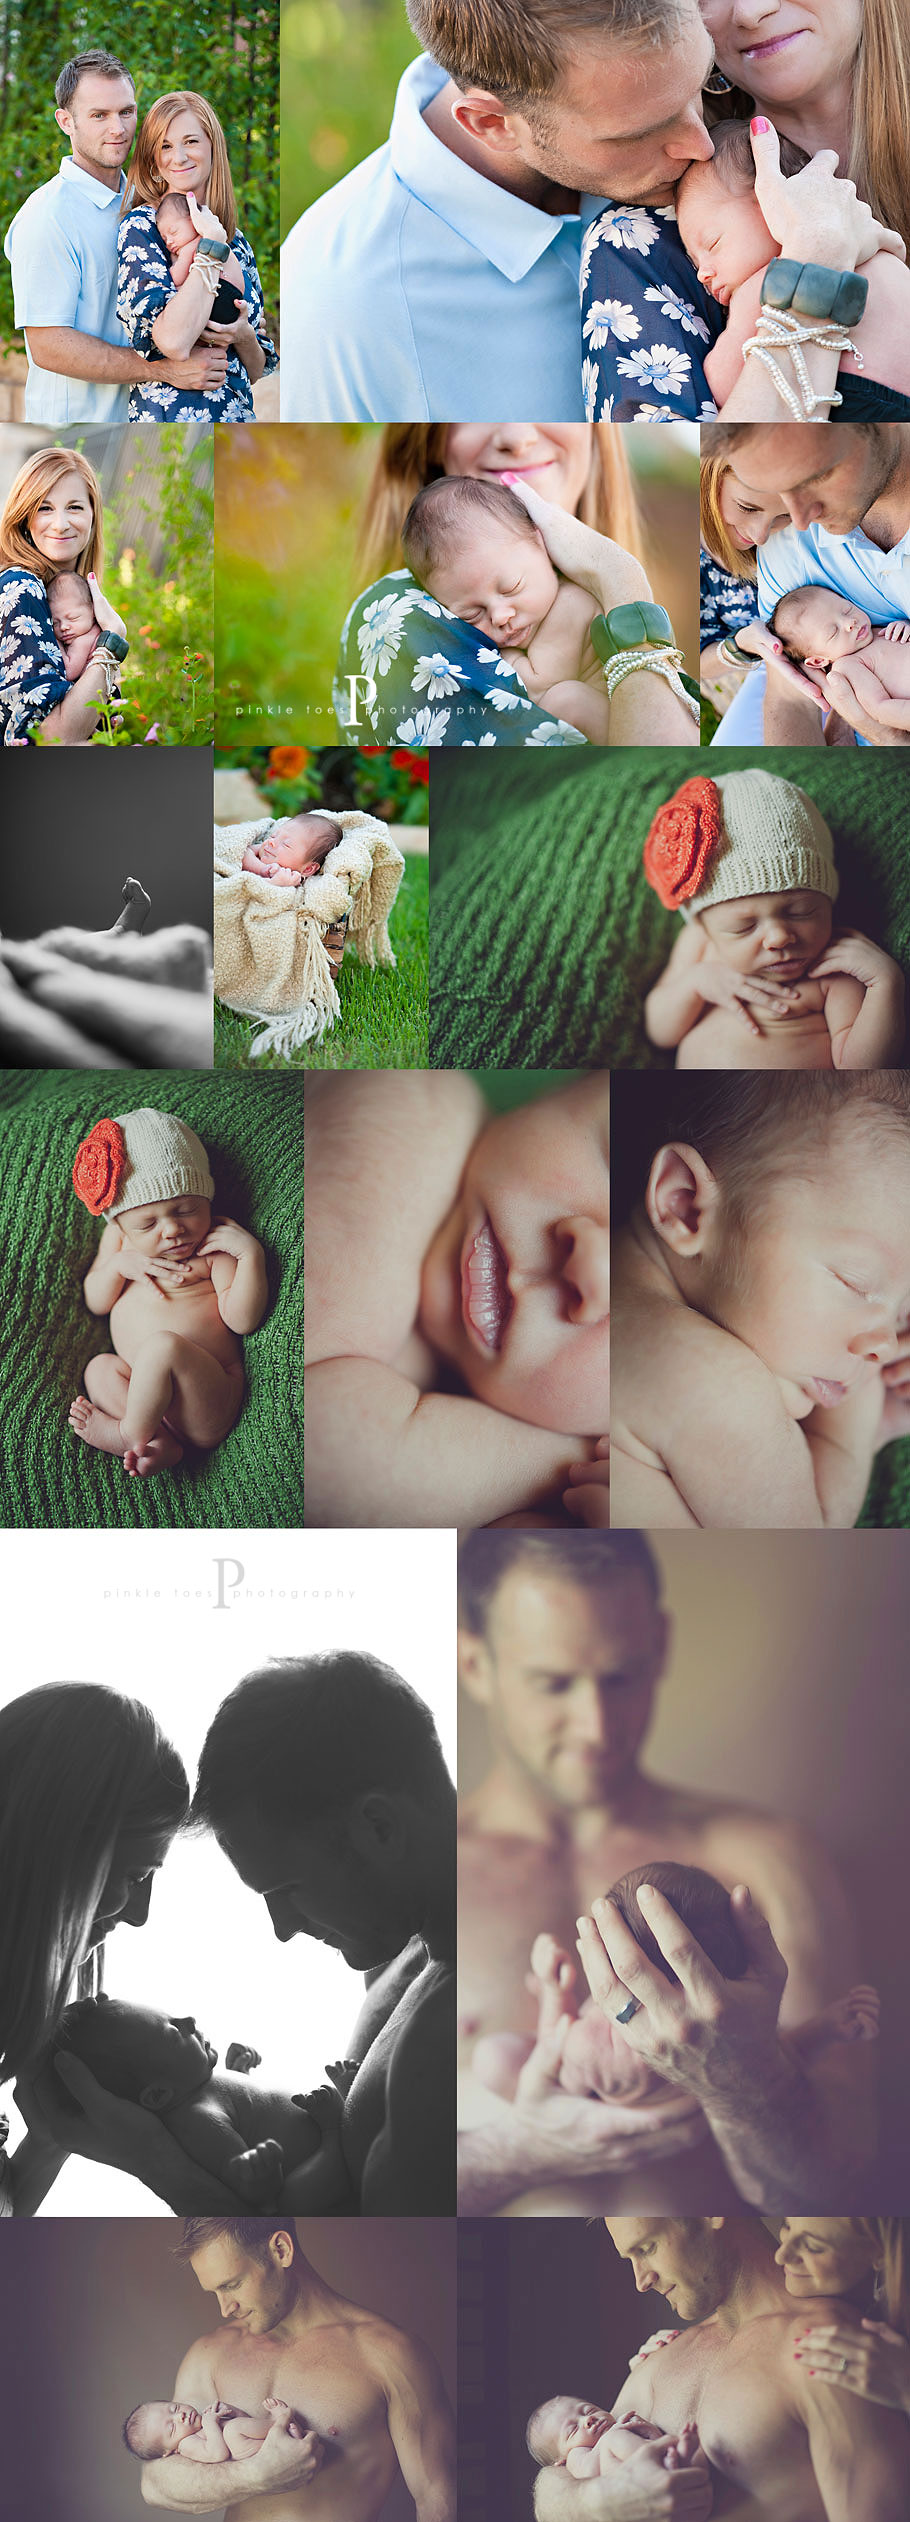 j2-unique-austin-family-newborn-baby-photographer.jpg